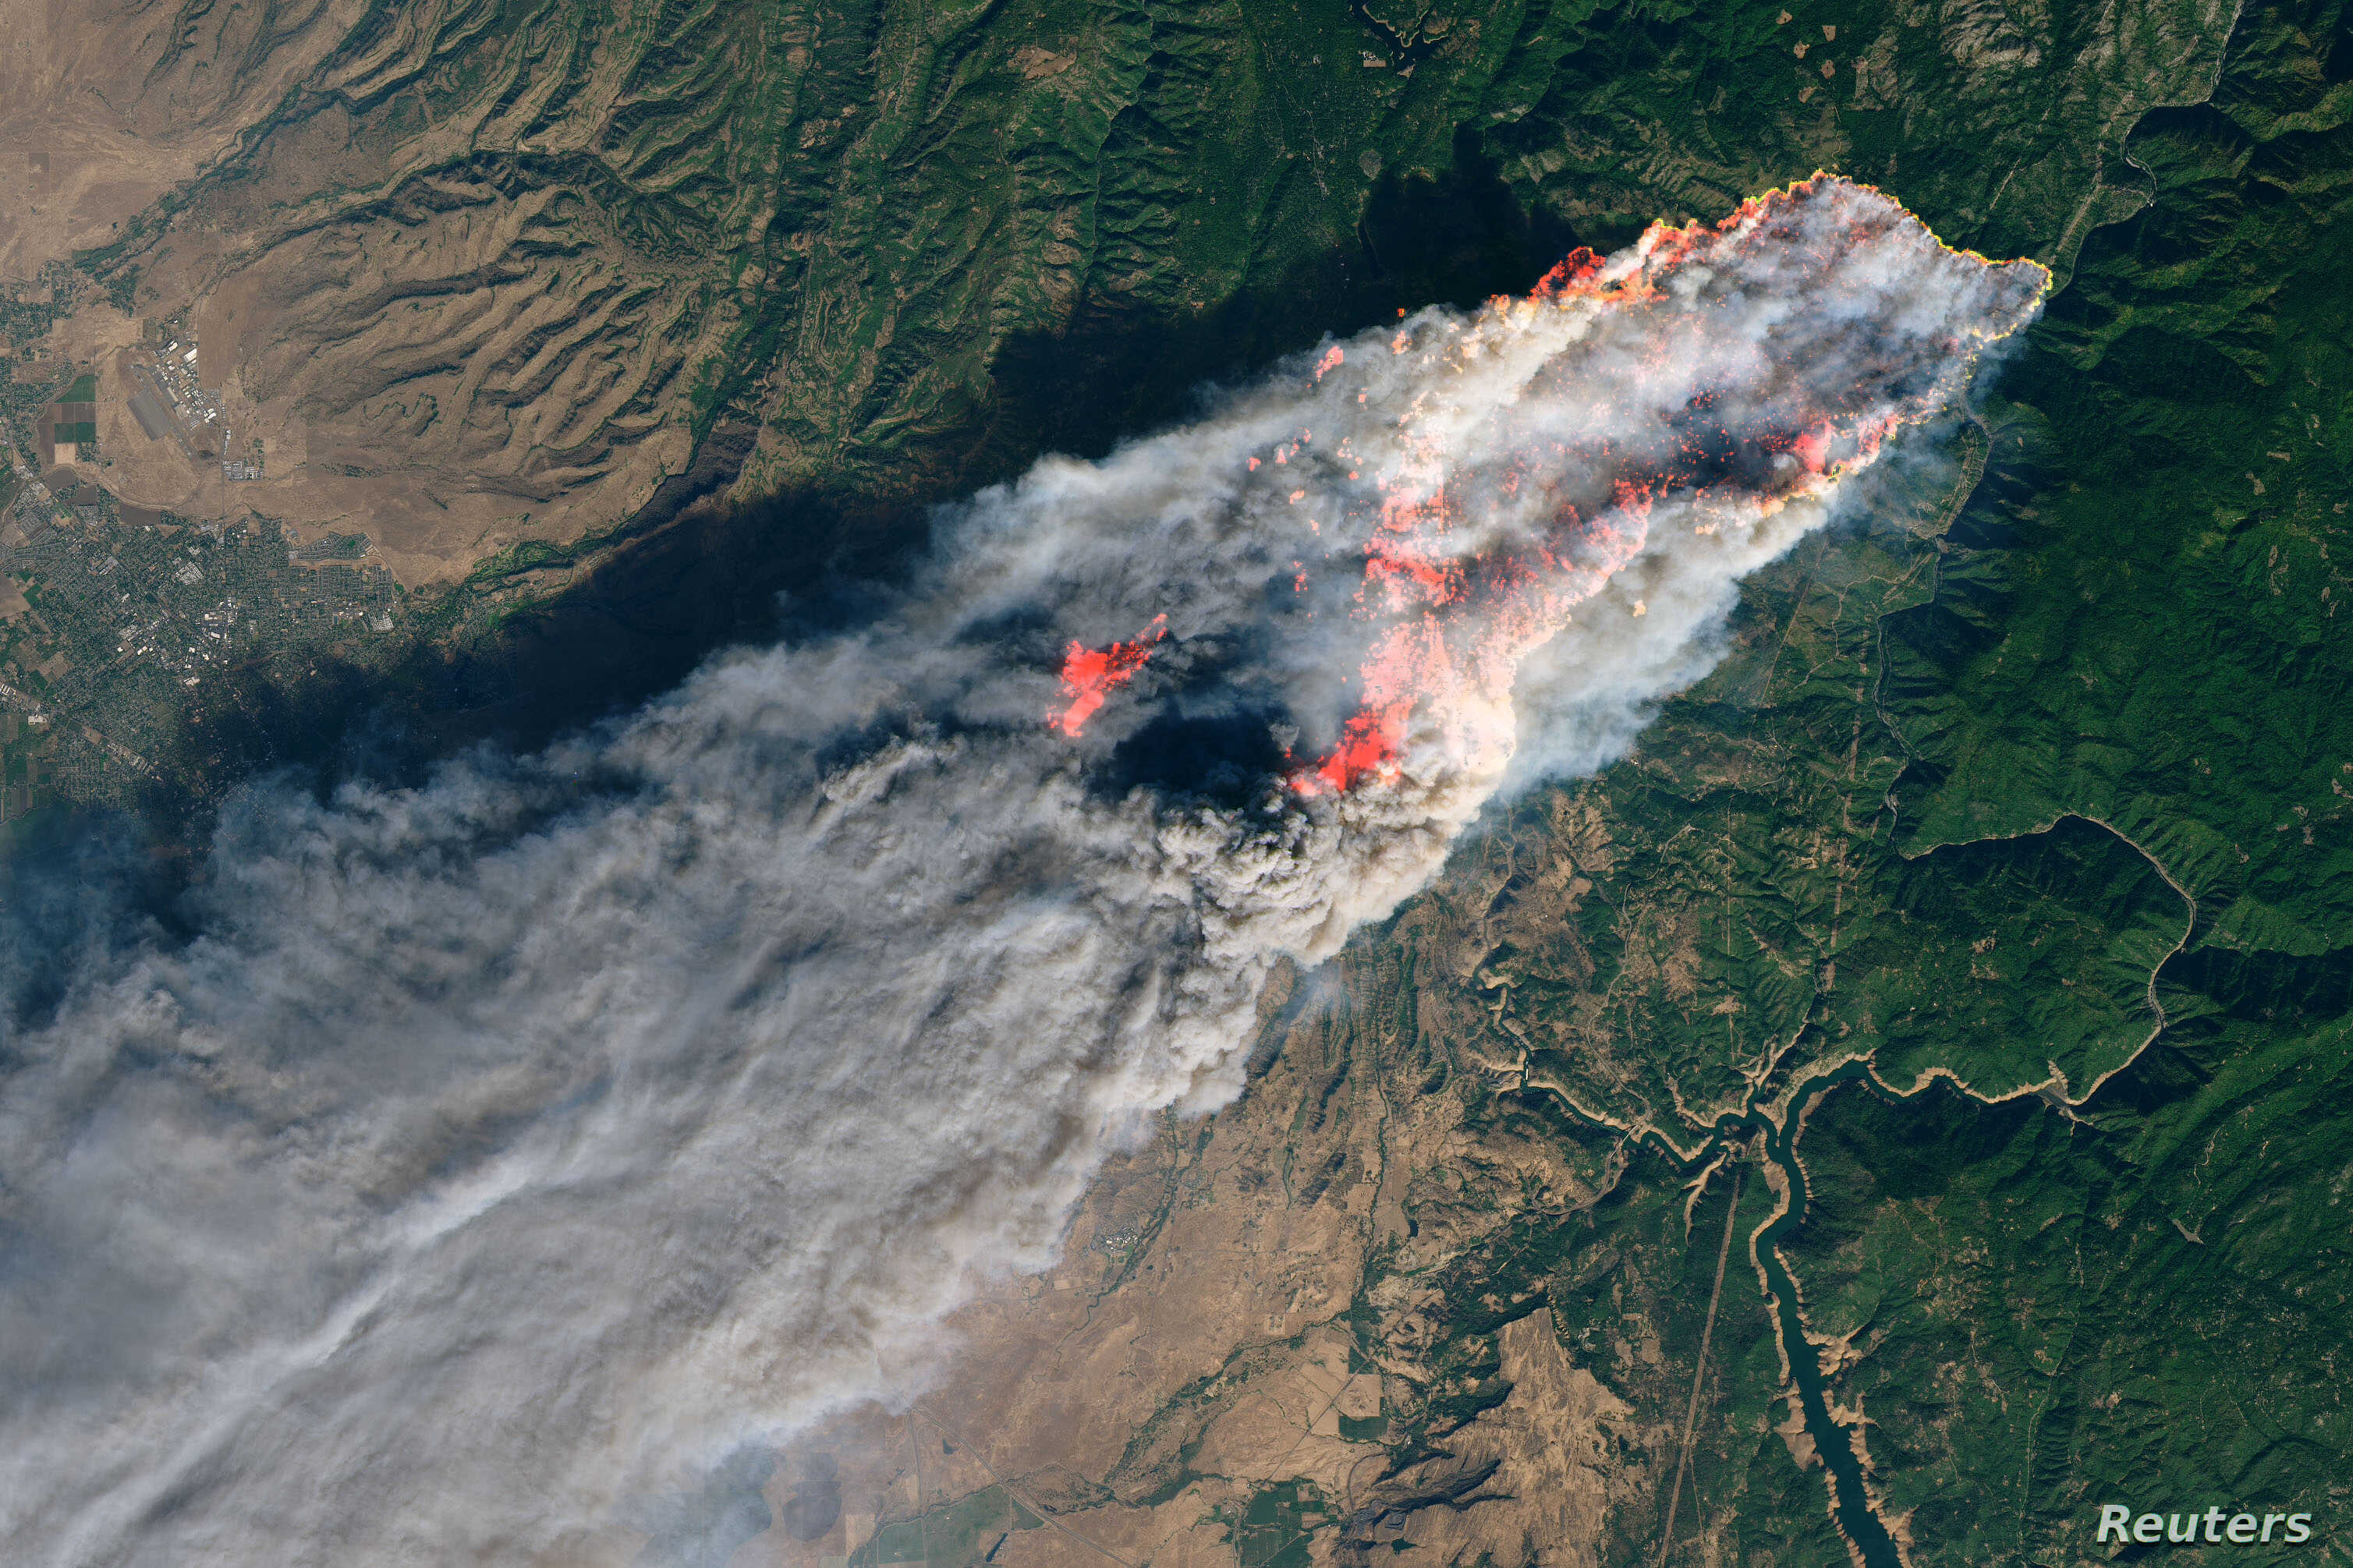 FILE - NASA's Operational Land Imager satellite image shows the Camp Fire burning at around 10:45 a.m. local time near Paradise, California, U.S., on Nov. 8, 2018.